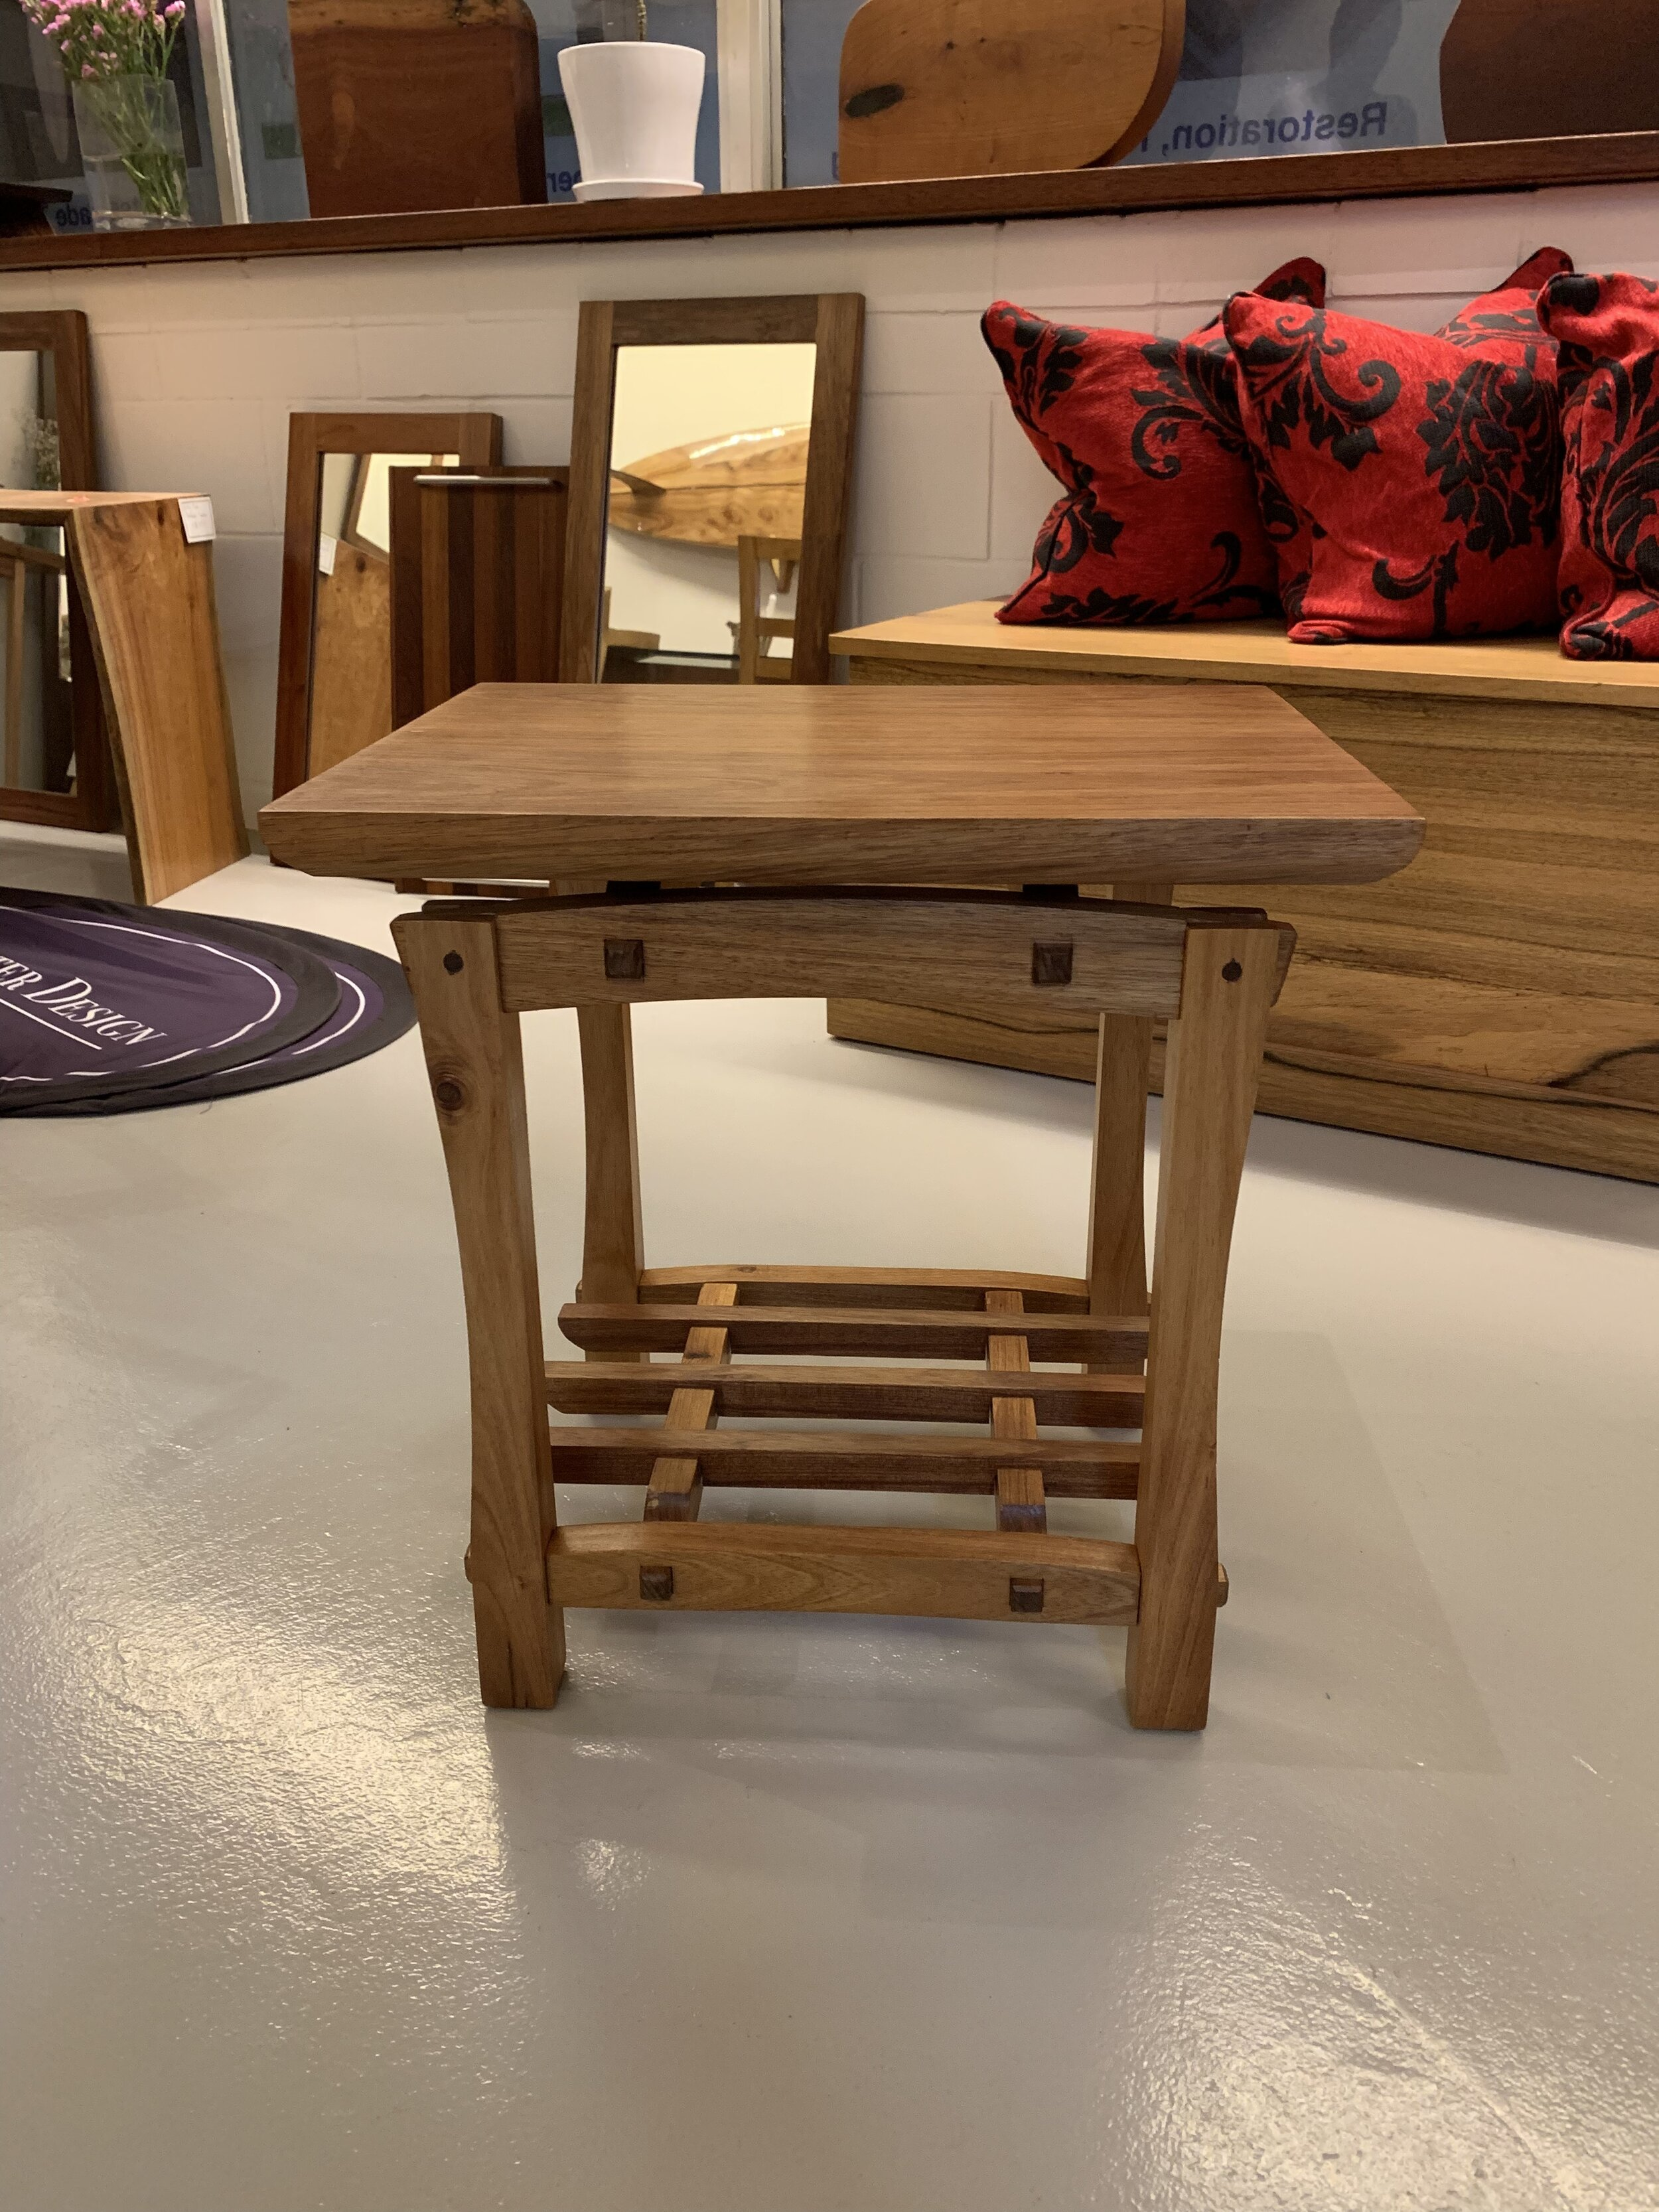 Beautiful execution of design and technique from Geoff woodworking student